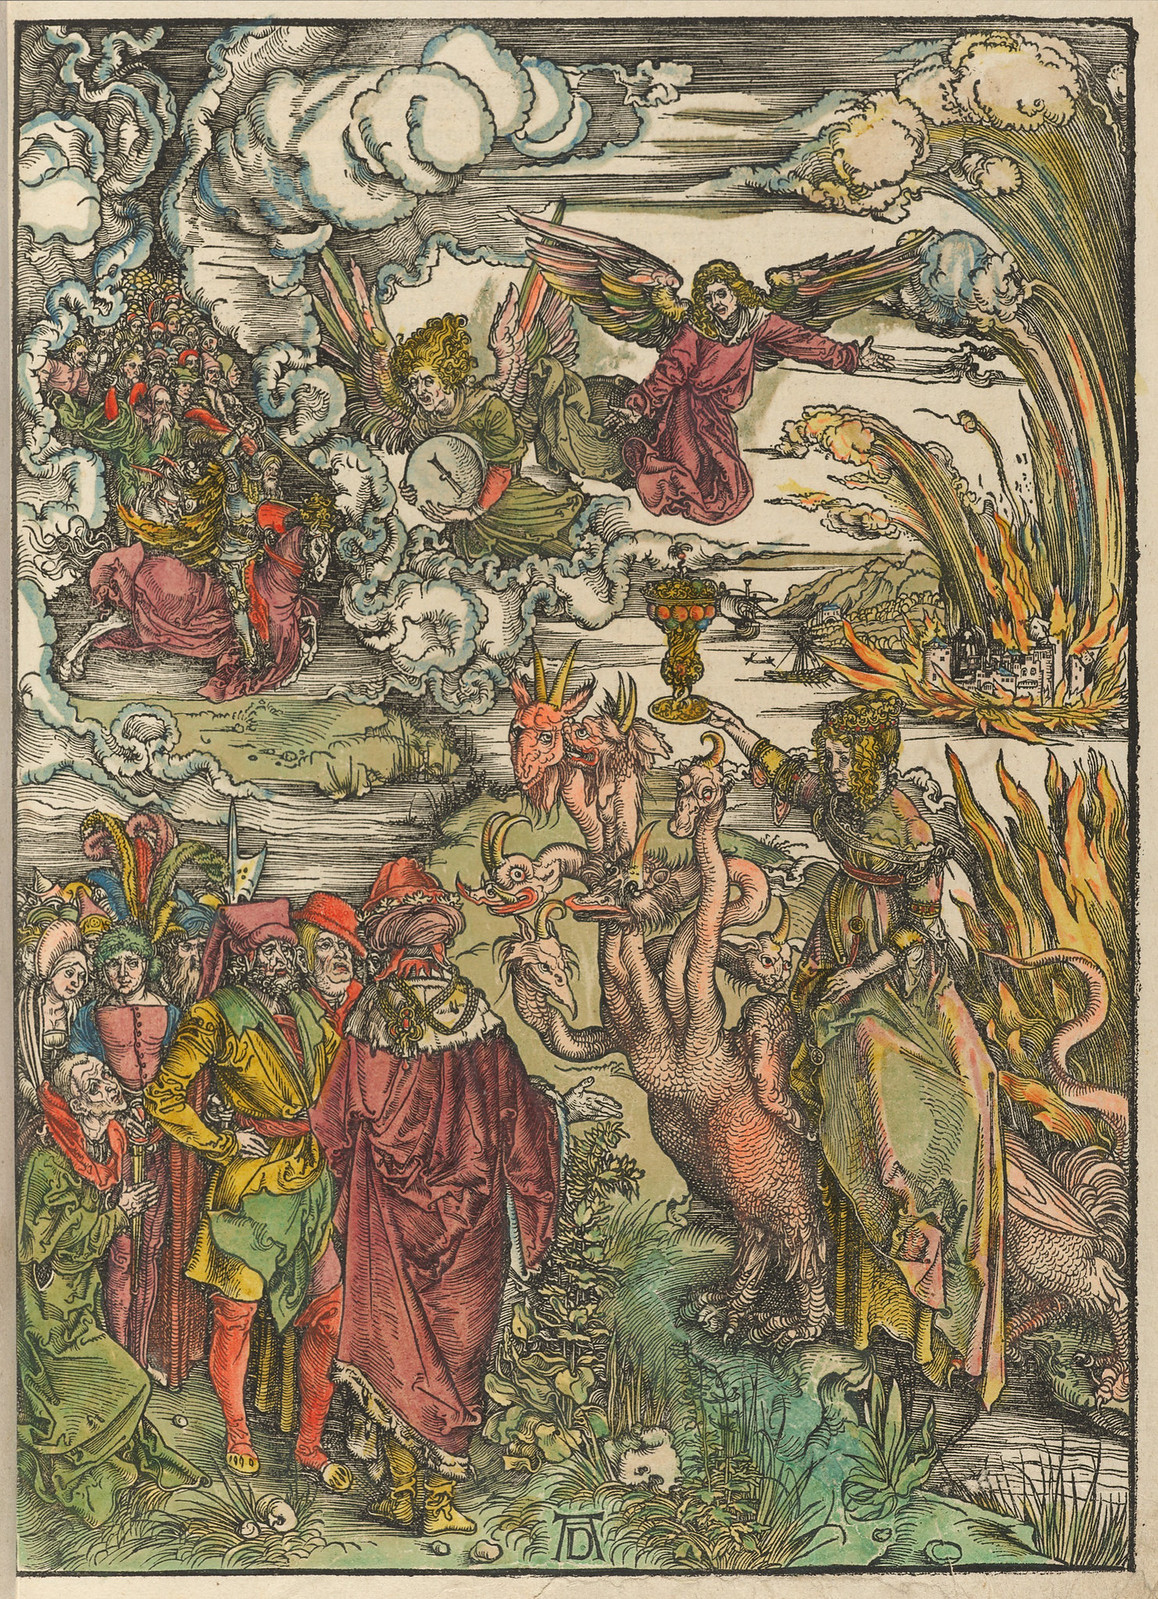 Albrecht Dürer - Whore of Babylon, Plate fourteen of fifteen from the Latin edition of The Apocalypse series, hand colored, printed 1511